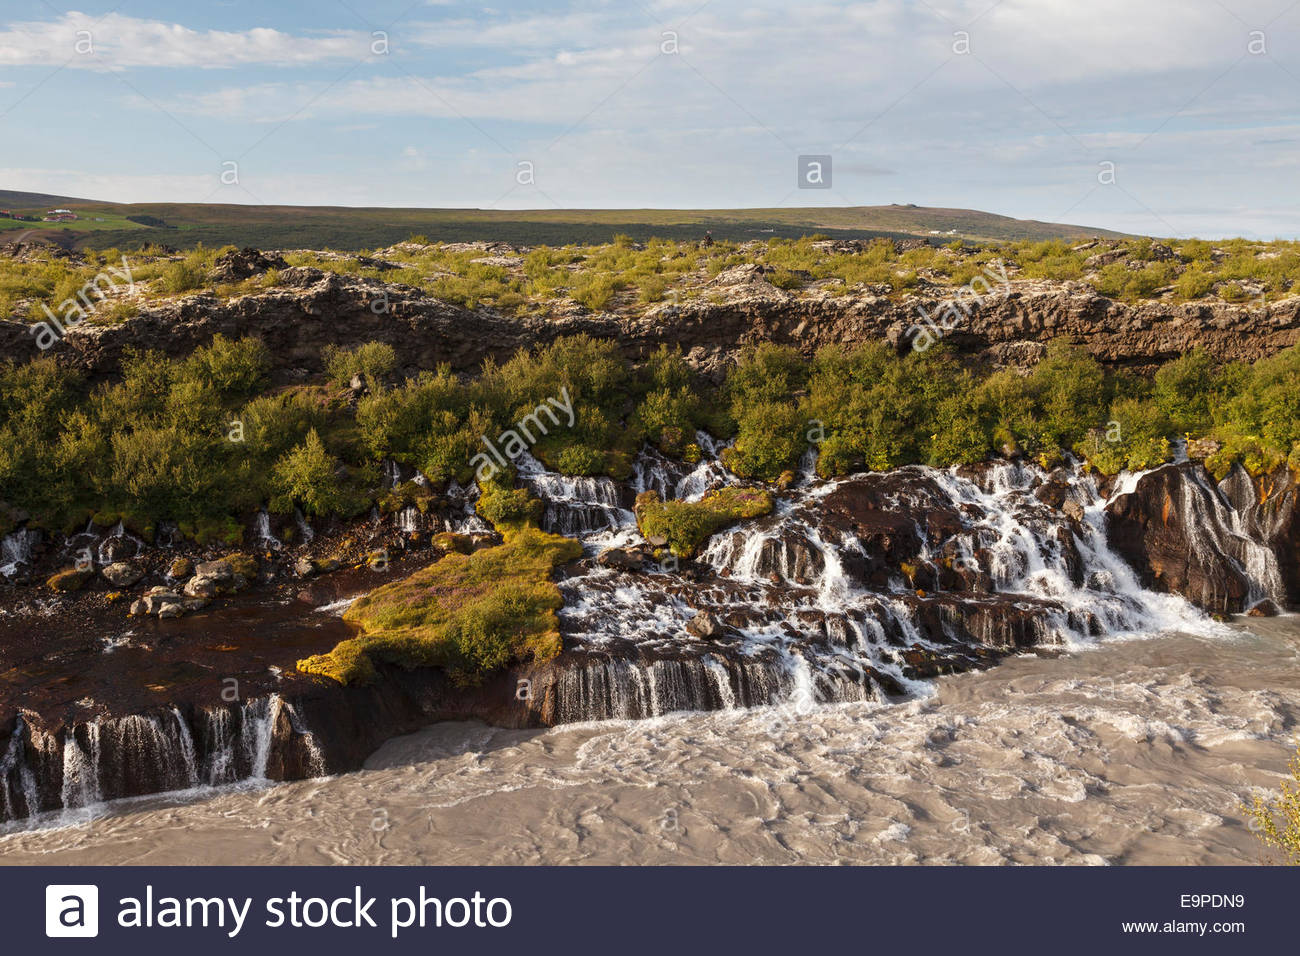 Hraunfossar (lava falls) near Borgarnes consist of water cascading out of a lava field into the river Hvítá - Stock Image